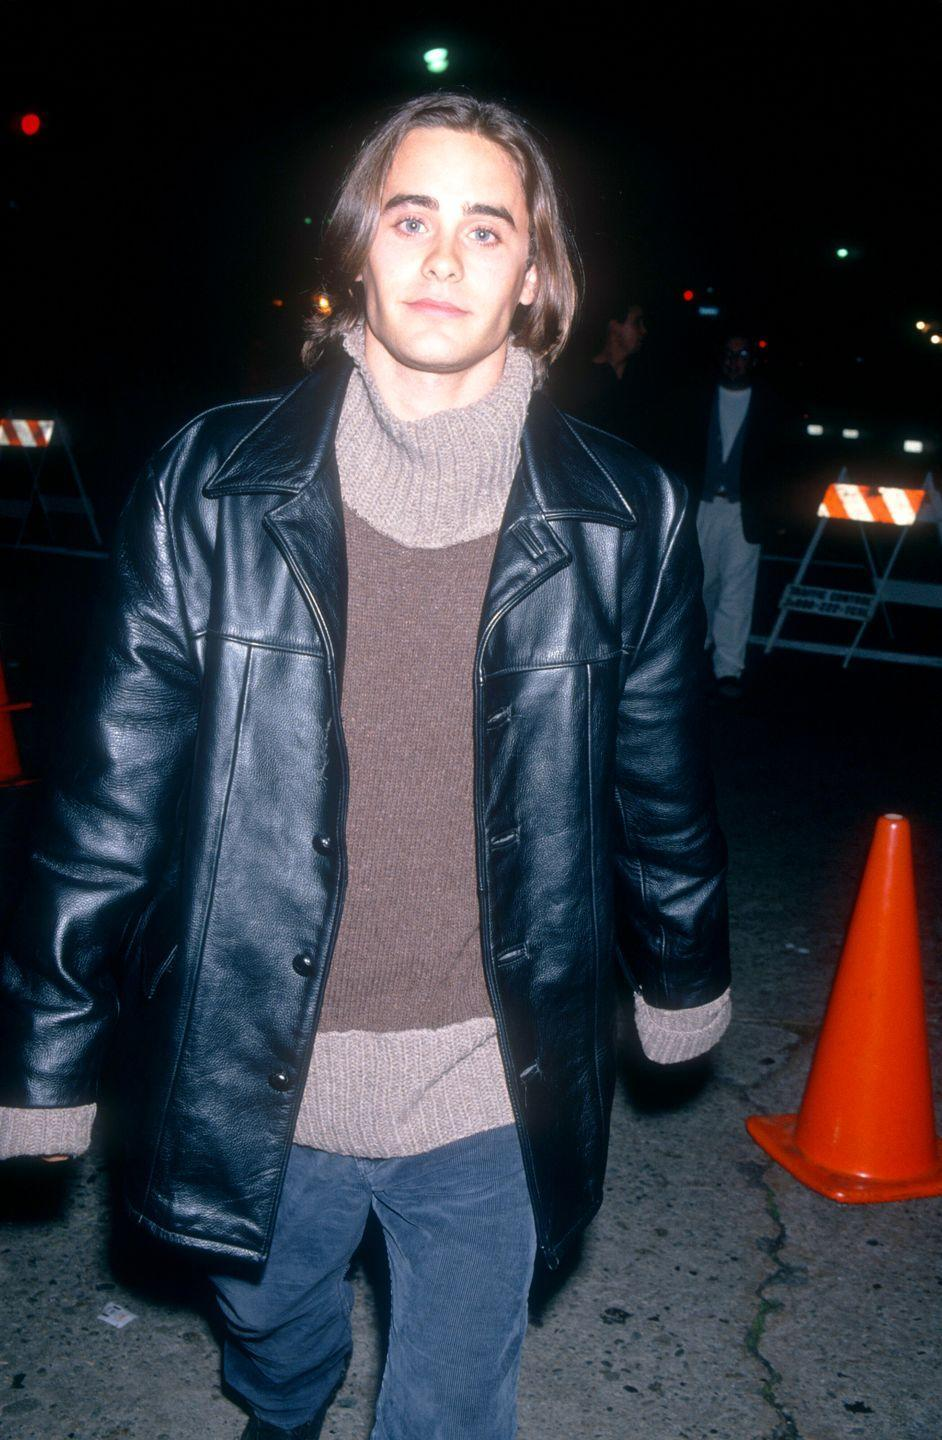 <p>Back in the day, Jared fulfilled many bad boy fantasies thanks to his role as Jordan Catalano on <em>My So-Called Life</em>. Hm, was it the leather jacket or his chiseled jawline? I'm calling it a tie. </p>